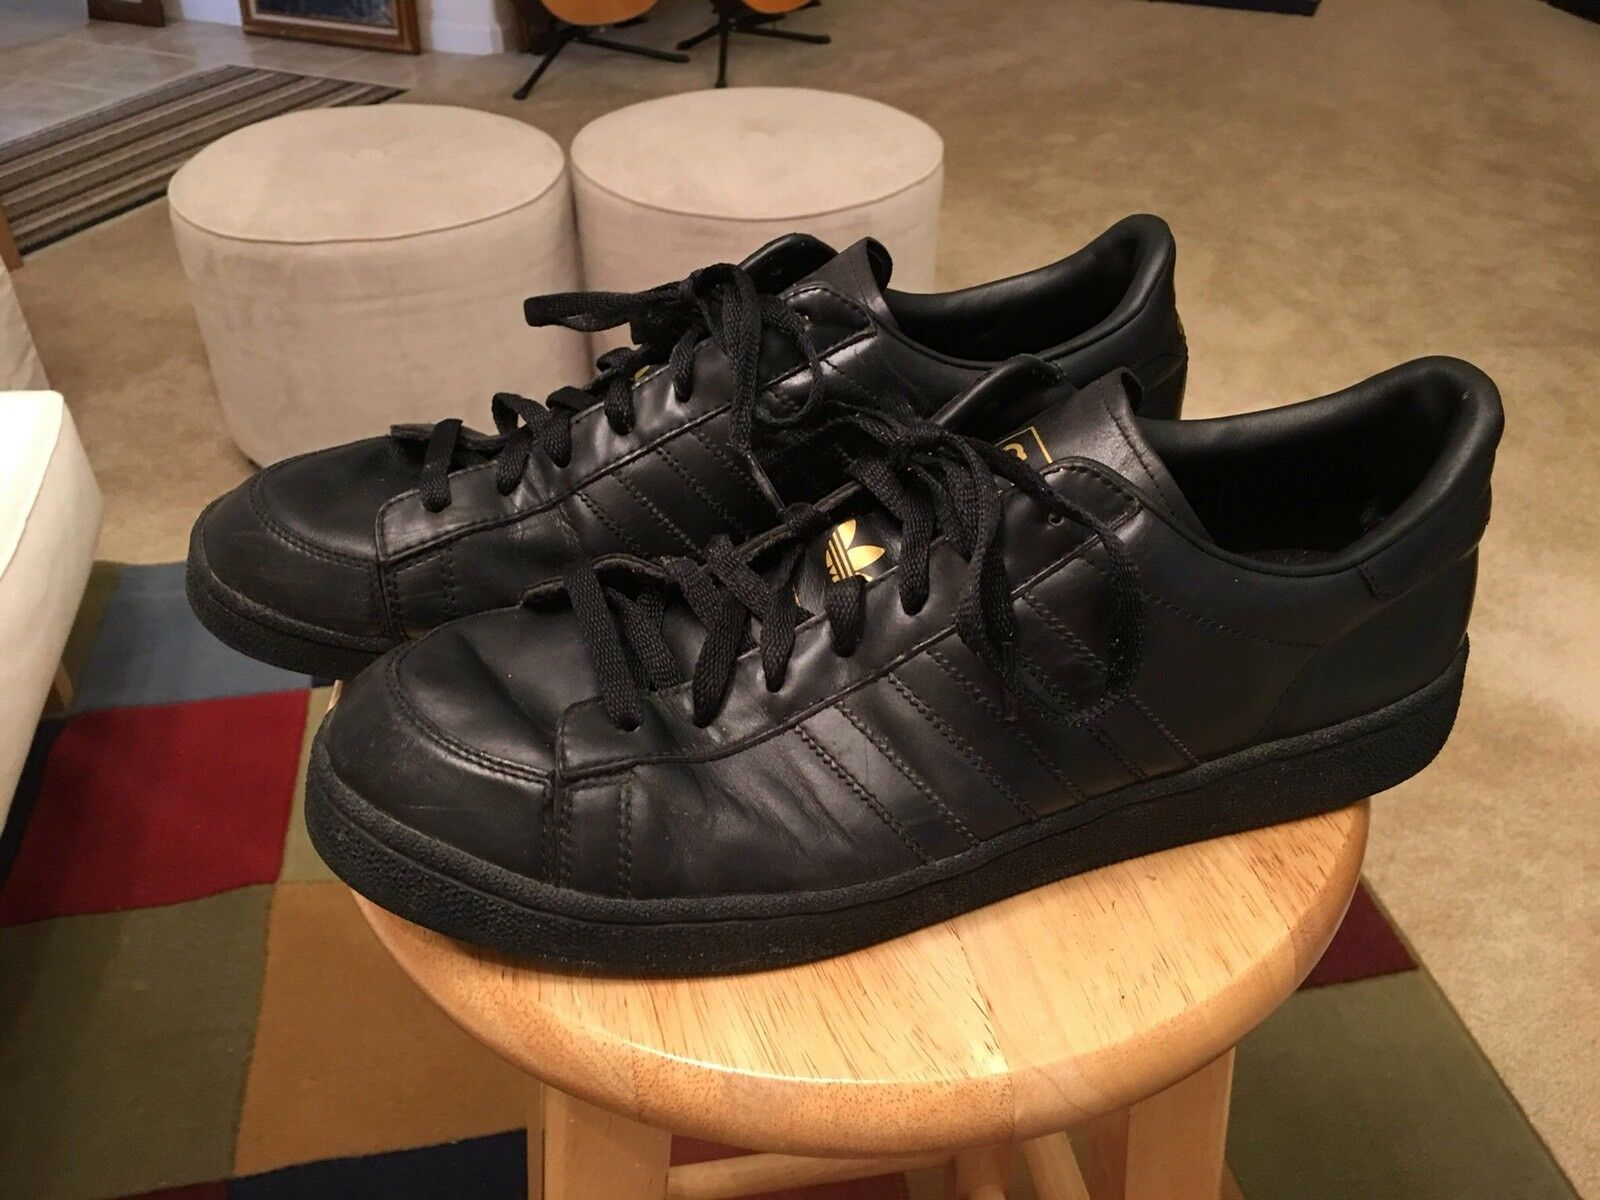 Adidas ABDUL JABBAR Black Men's US14 Leather Athletic Sneakers Shoes